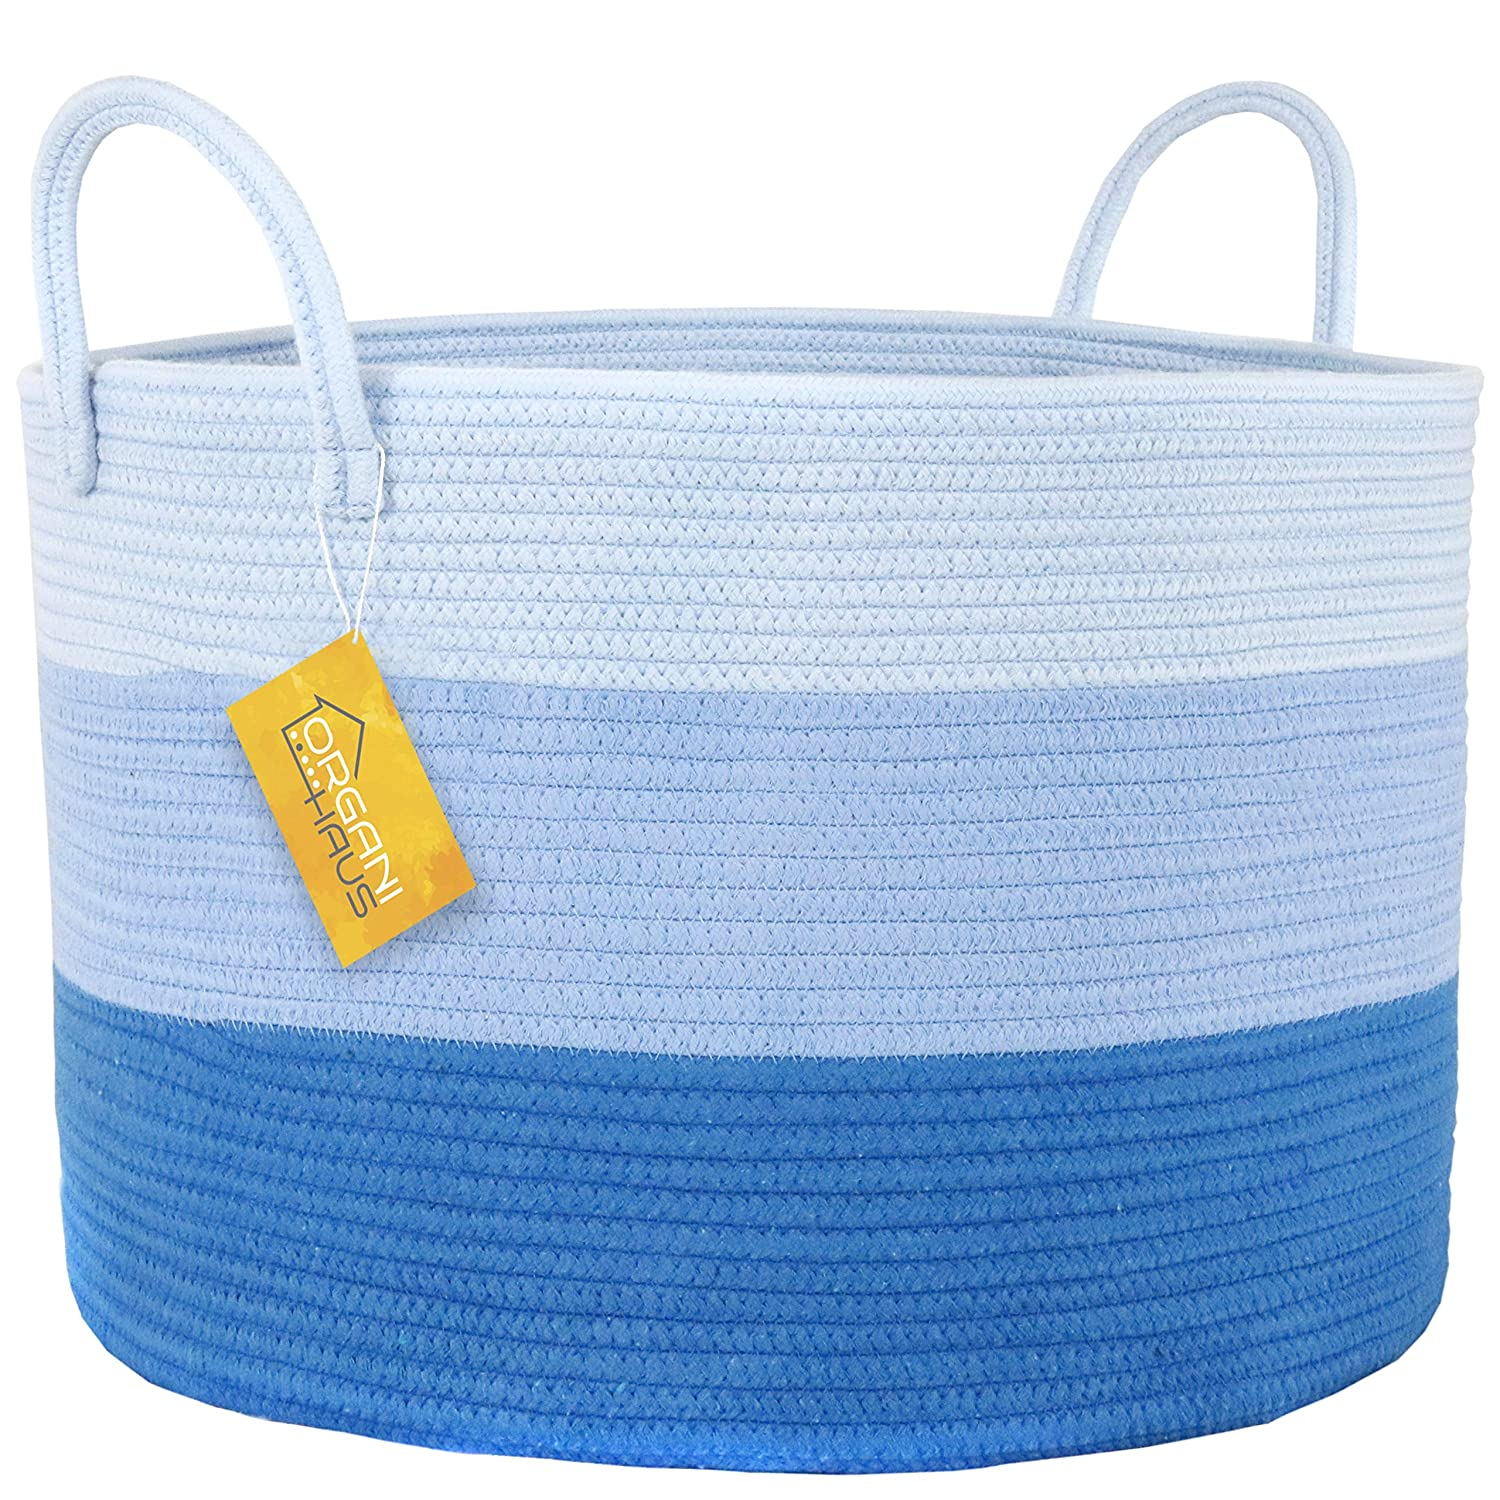 OrganiHaus XXL Extra Large Cotton Rope Basket 20x13.5 Blanket Storage Basket with Long Handles Pillow /& Blanket Basket Baby and Kids Room Toy Bin Baby Blue Decorative Clothes Hamper Basket